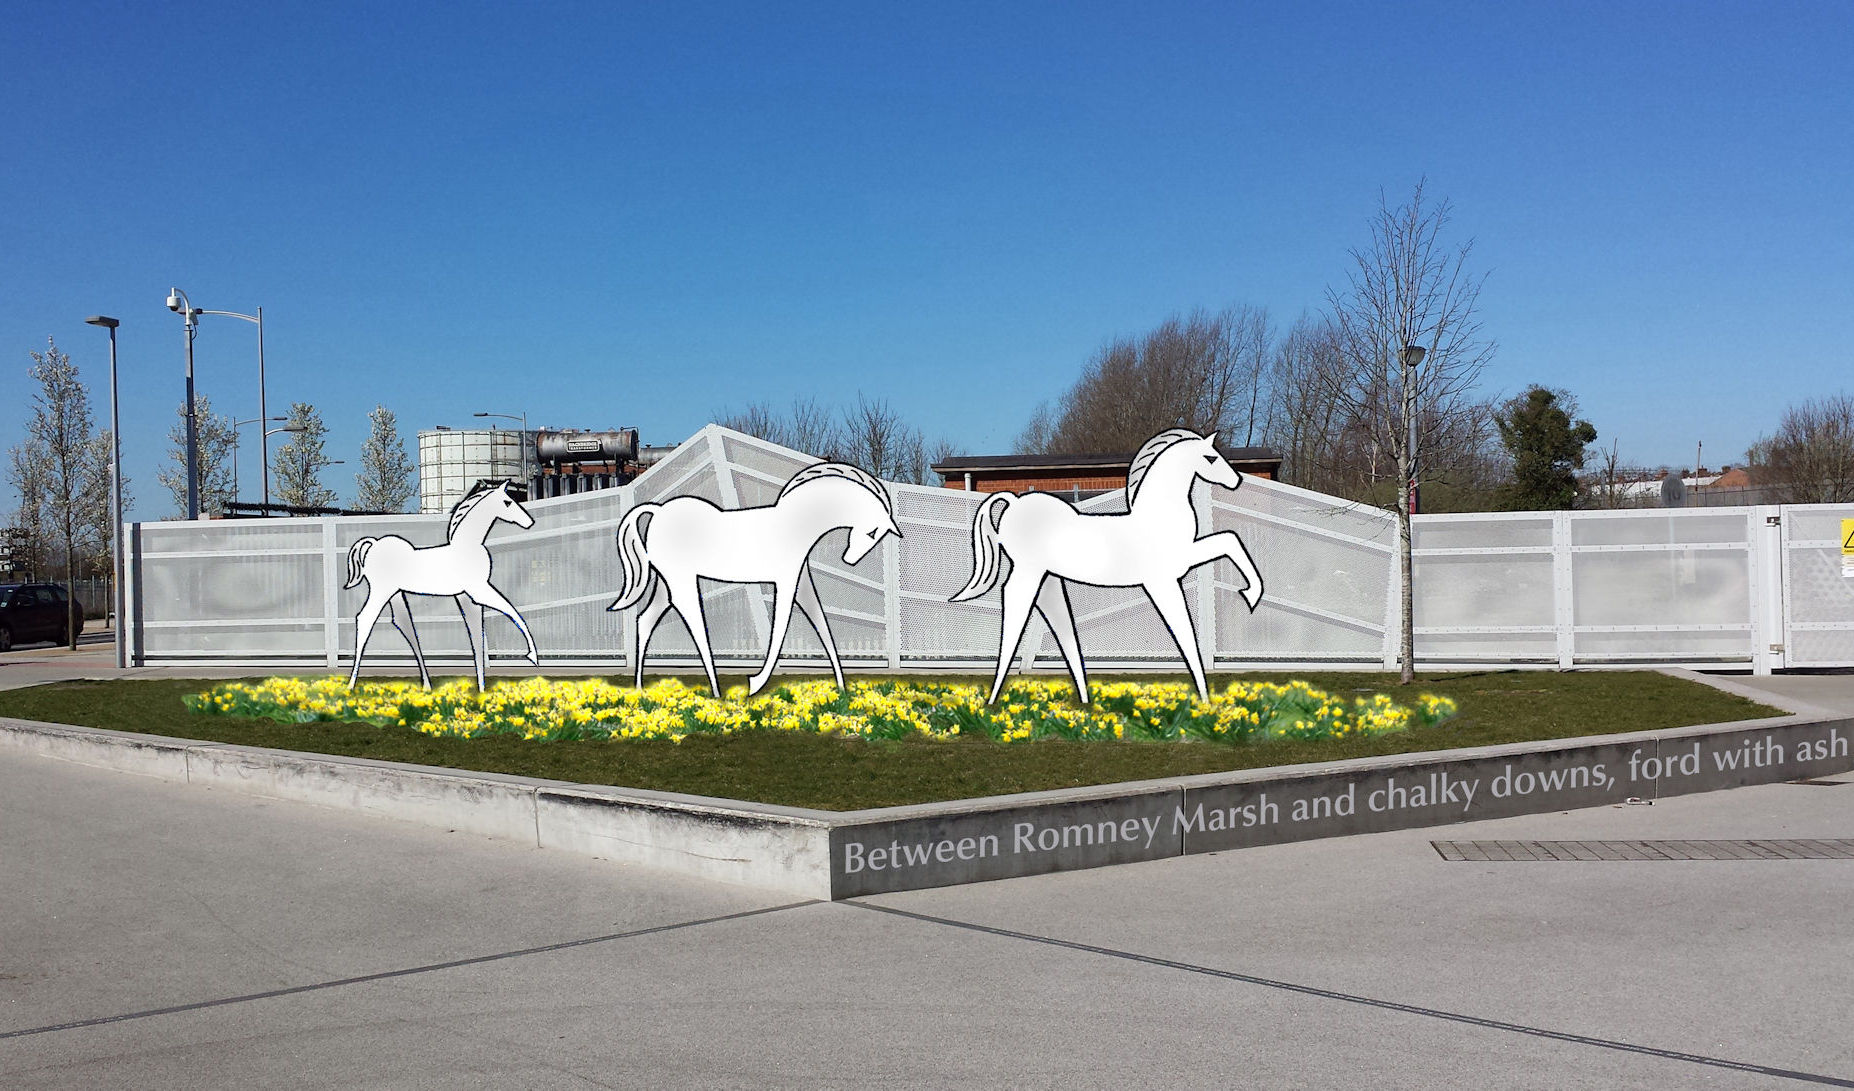 pROPOSED SITES FOR wHITE hORSES